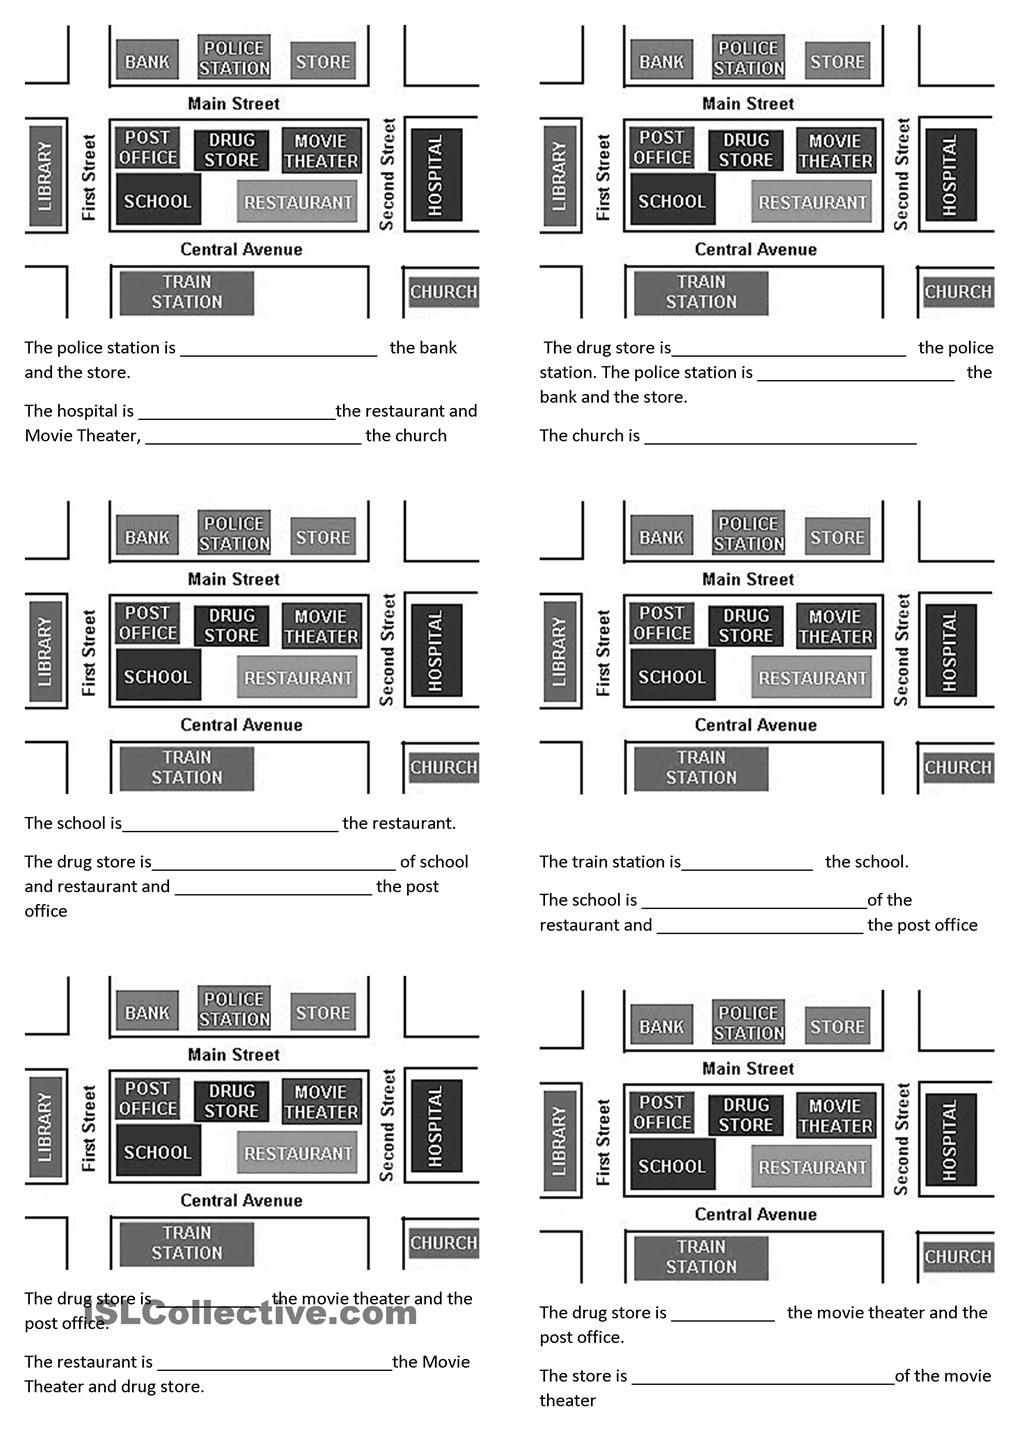 basic prepositions of place teaching prepositions teaching english english prepositions. Black Bedroom Furniture Sets. Home Design Ideas